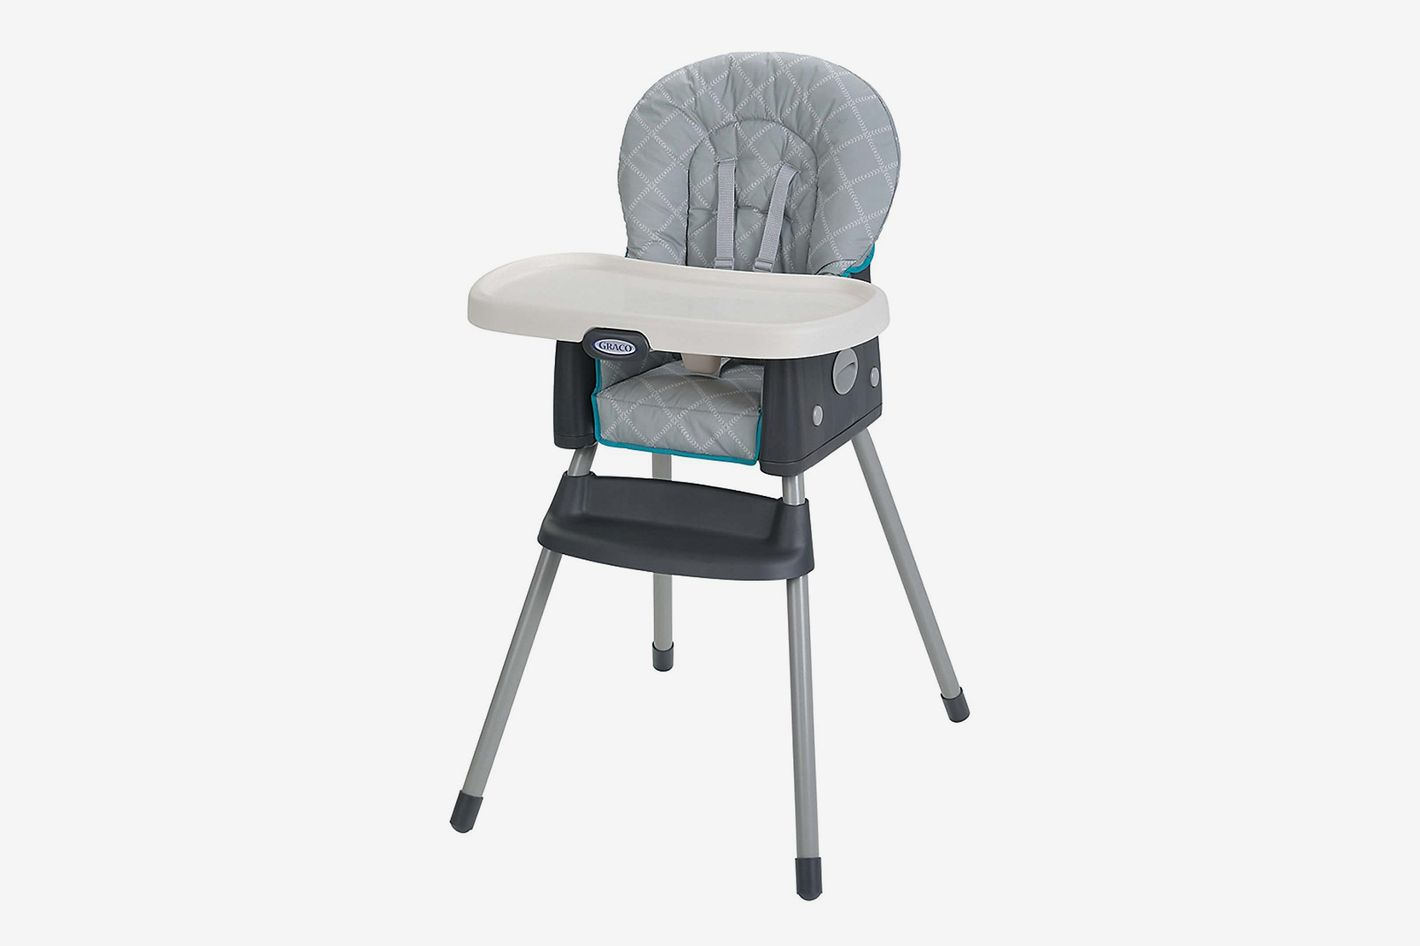 Graco Simpleswitch 2 In 1 High Chair